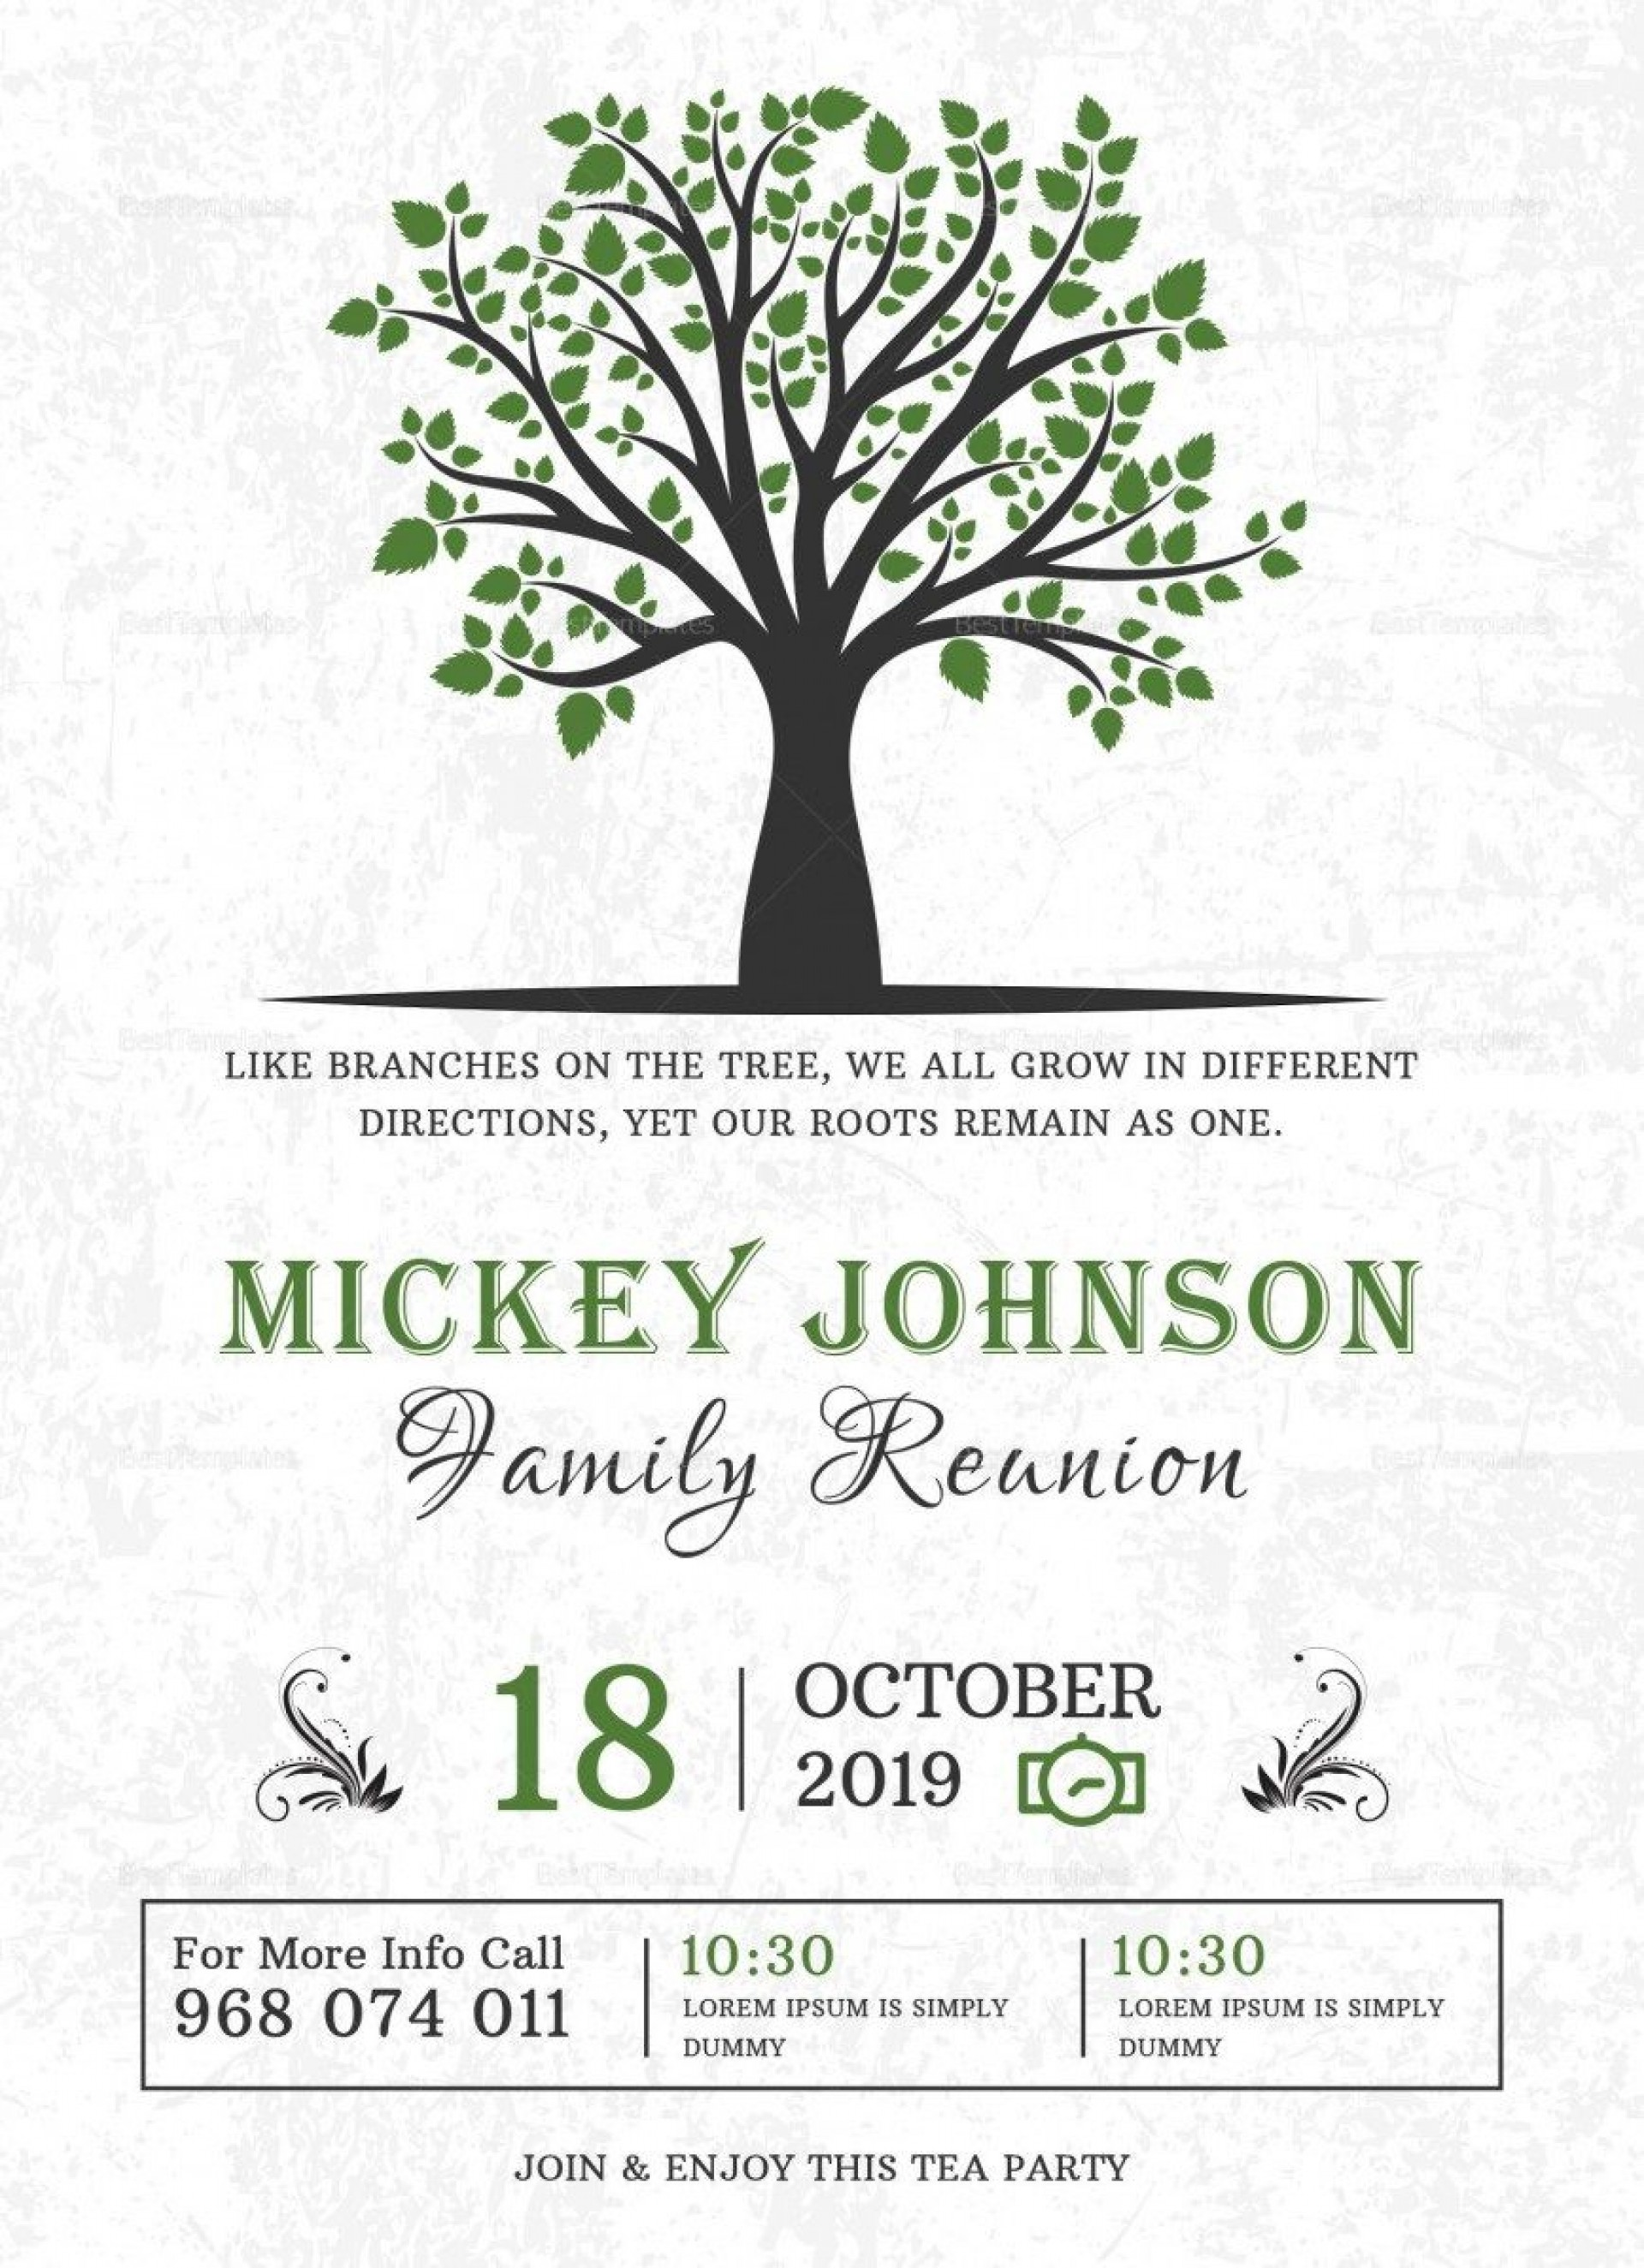 009 Excellent Family Reunion Invitation Card Template High Resolution 1920